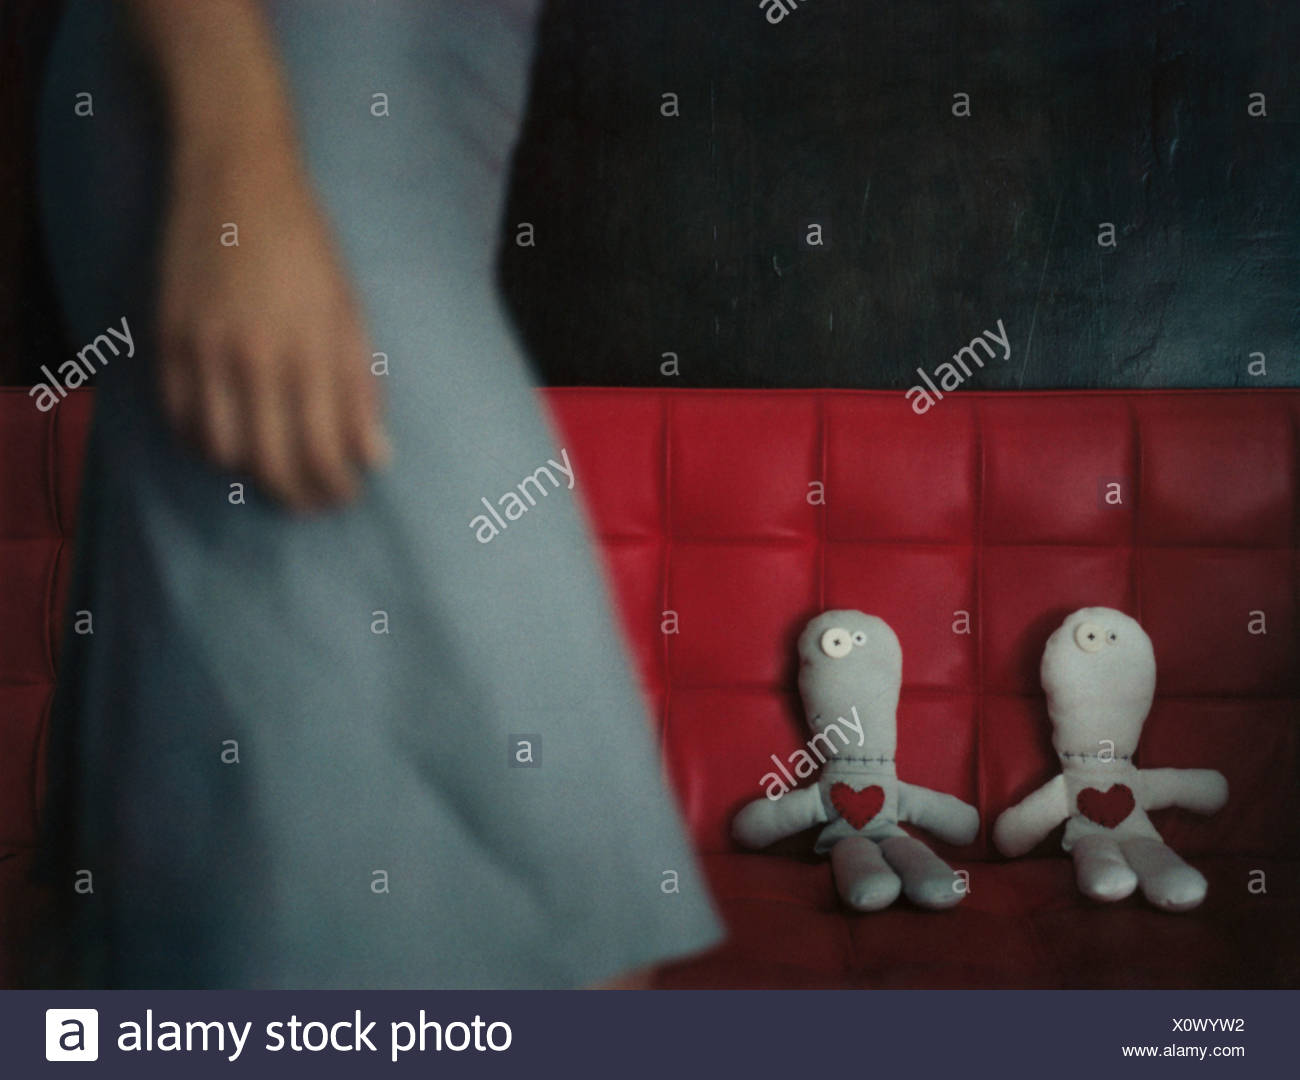 Woman walking by two rag dolls on red sofa, mid section - Stock Image